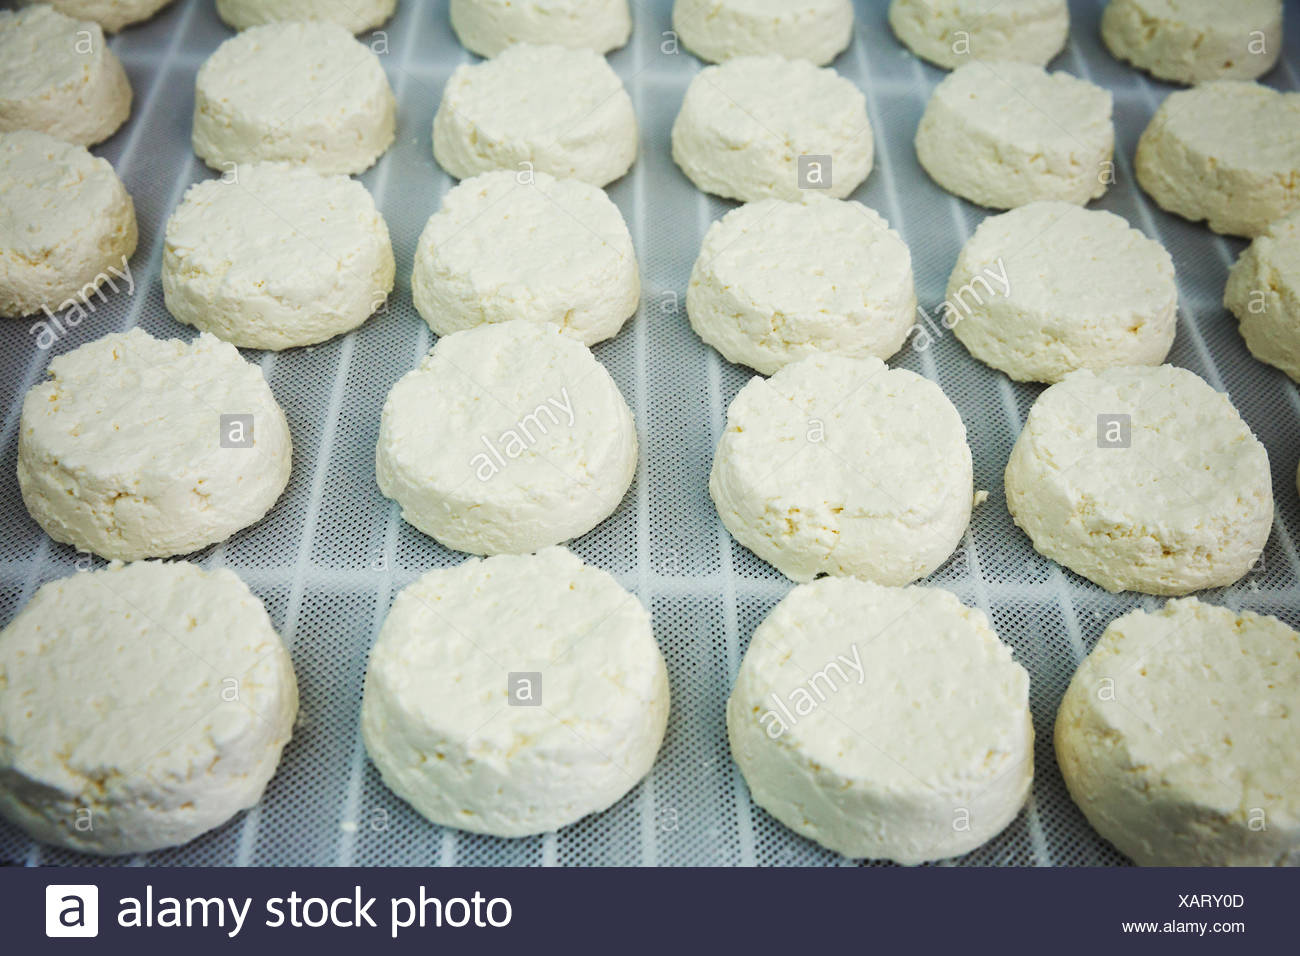 Close up of fresh goats cheeses in a creamery. - Stock Image